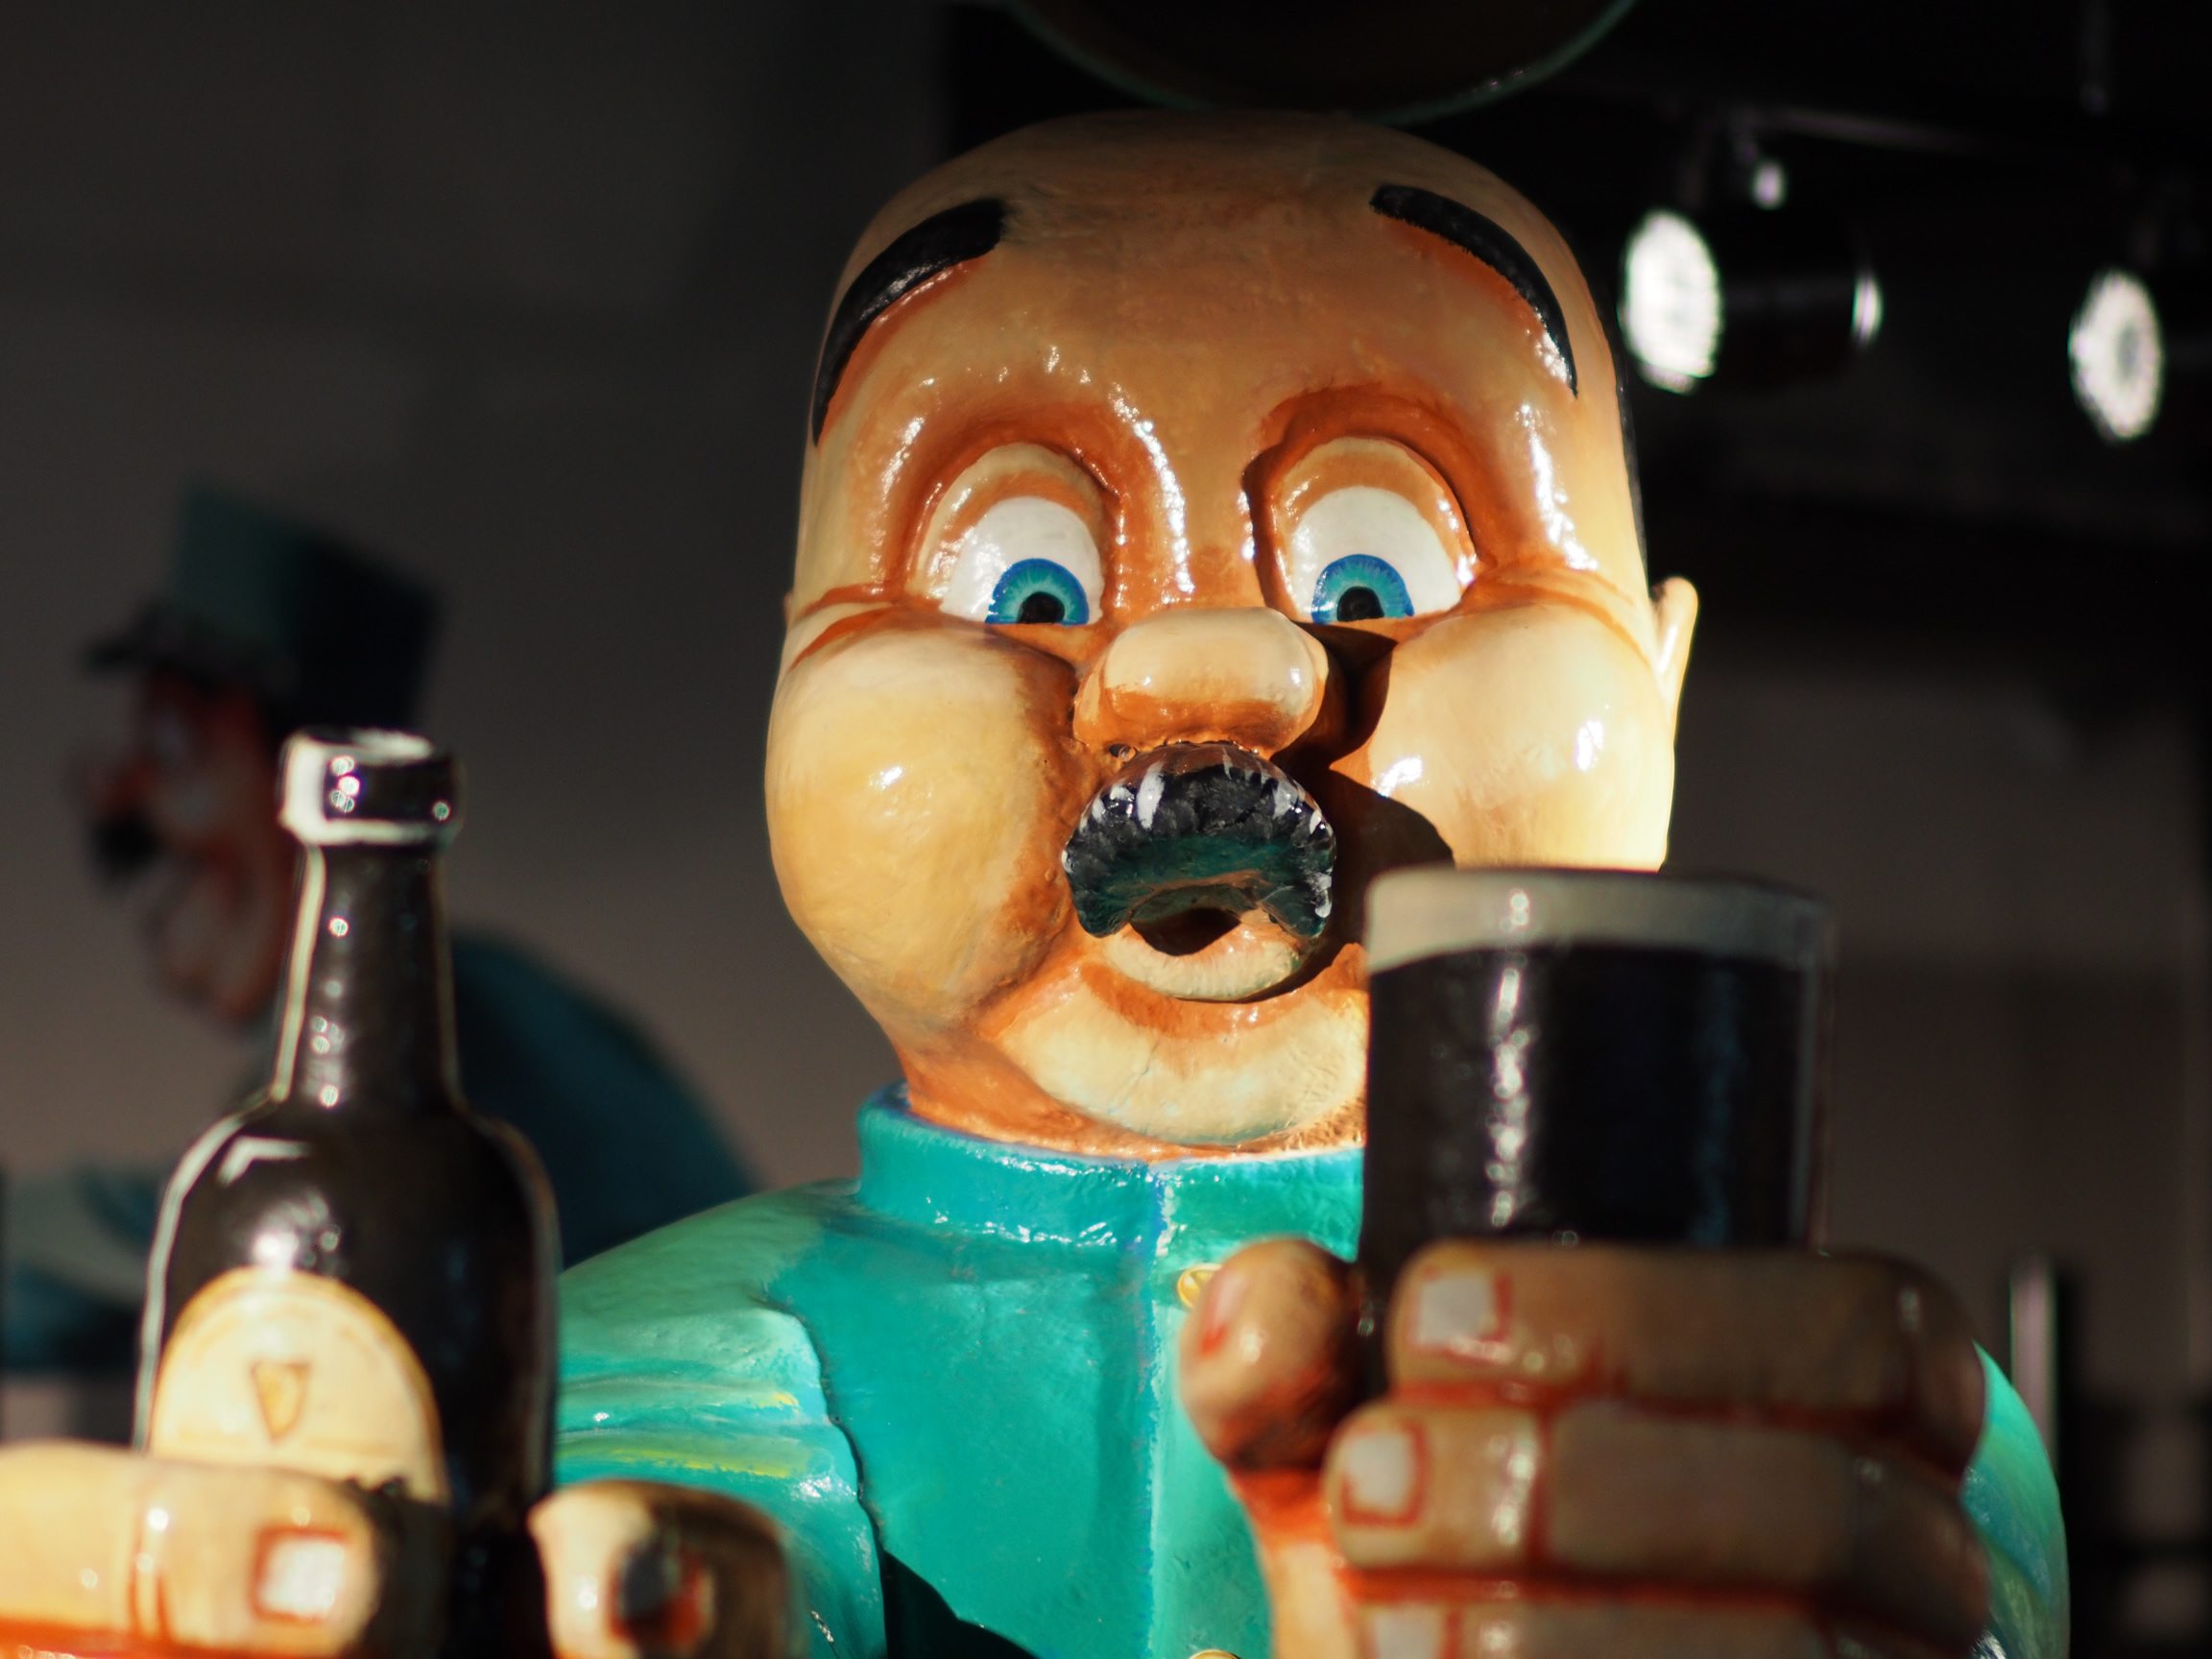 An excited chap I met at the Guinness Factory Storehouse in Dublin.